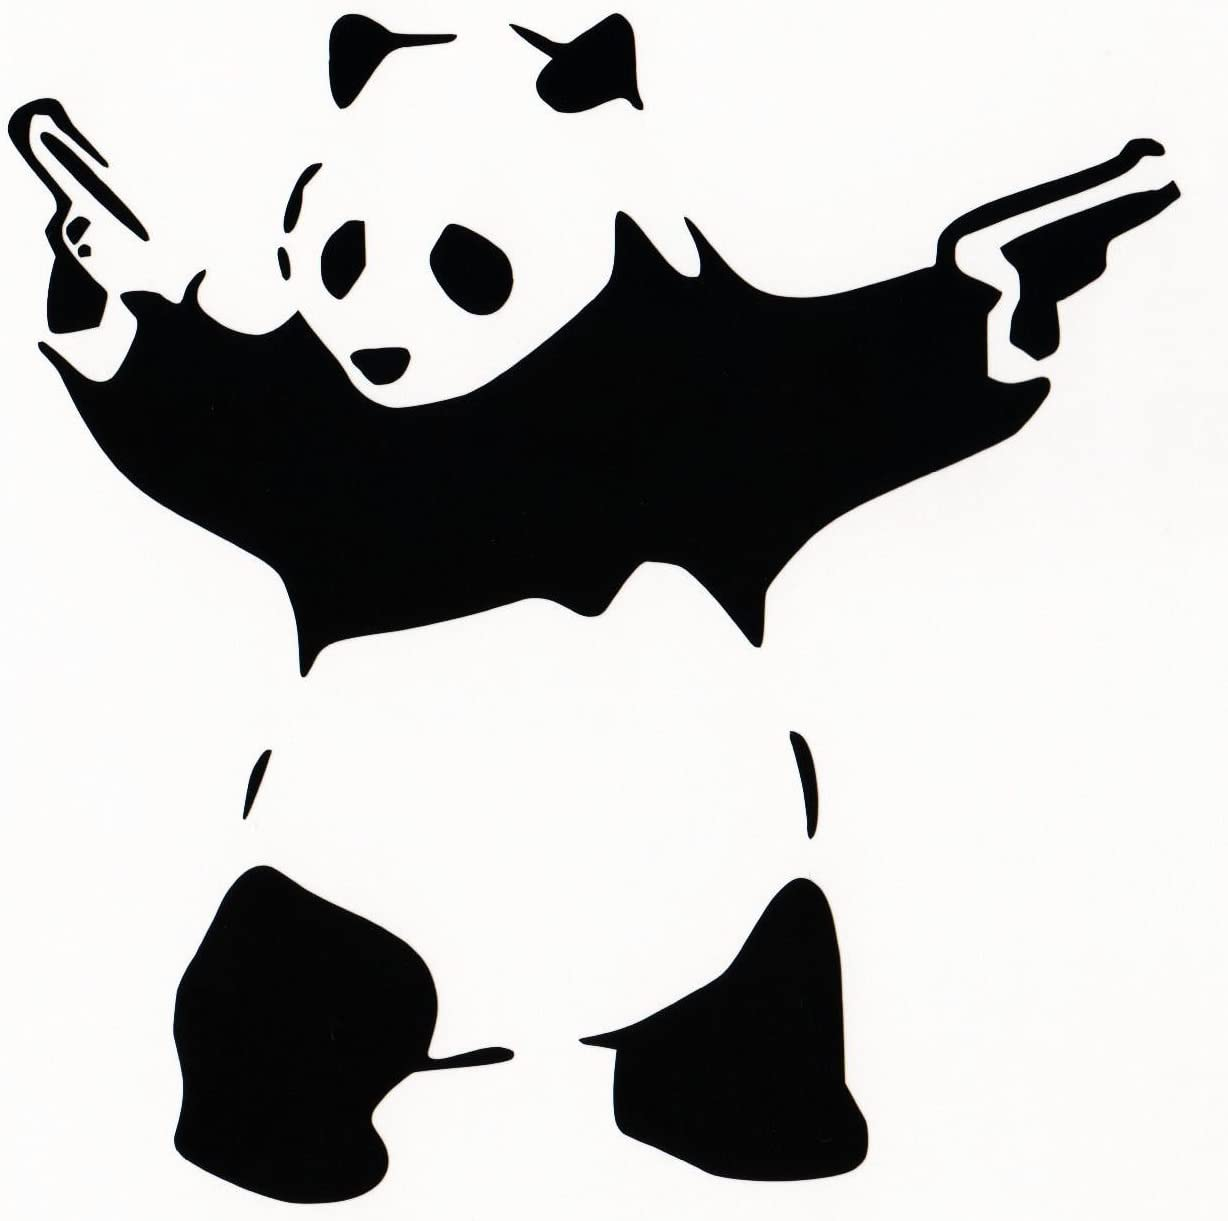 "Panda with Guns Sticker Decal Car Bumper Bansky Windows Art Vinyl Truck (5.5"" inches (White)"